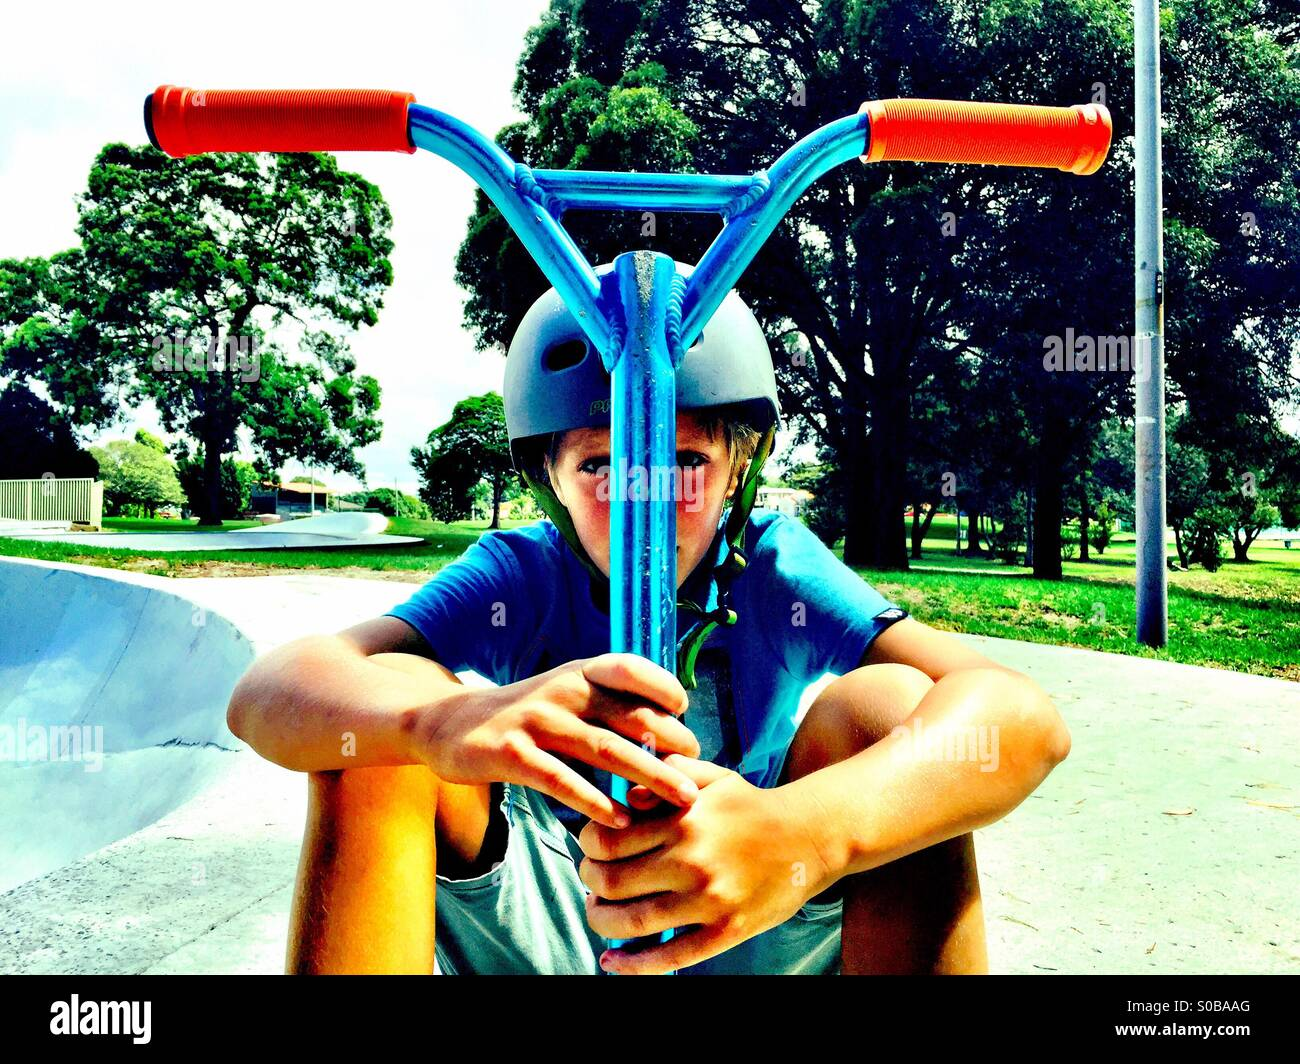 A ten year old boy with his scooter - Stock Image